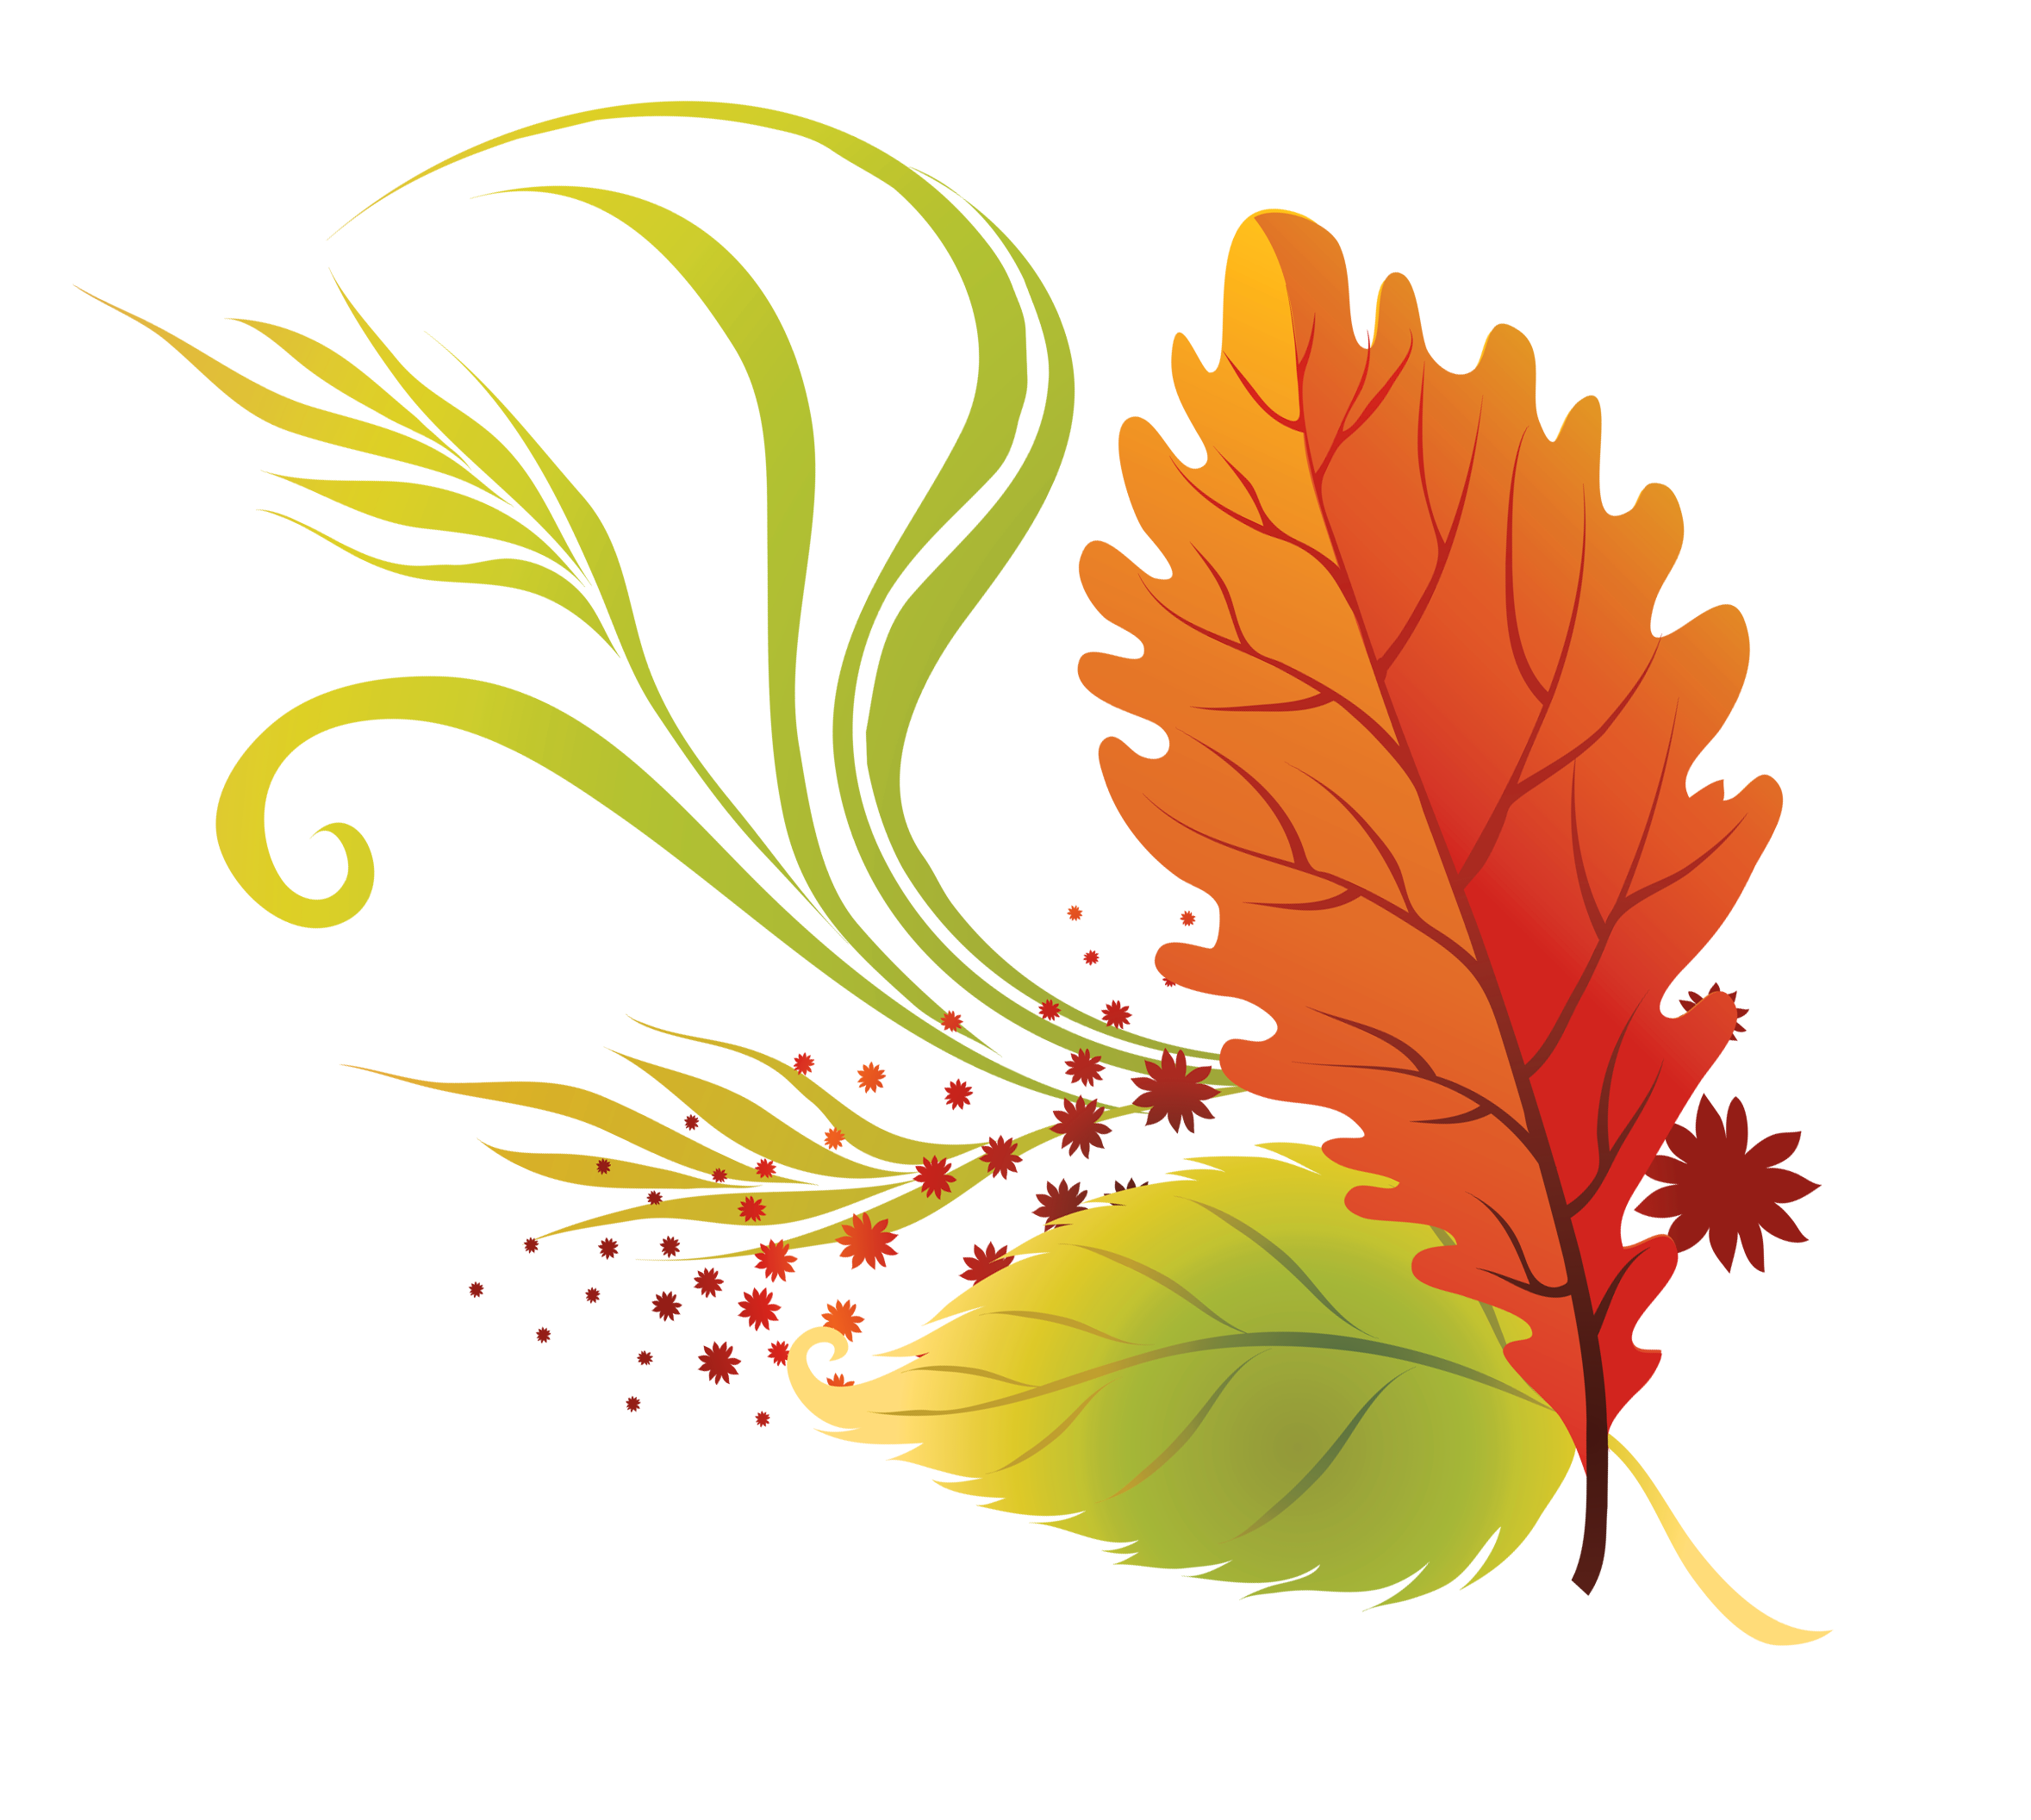 Fall leaves fall clip art autumn clip art leaves clip art clipart 6